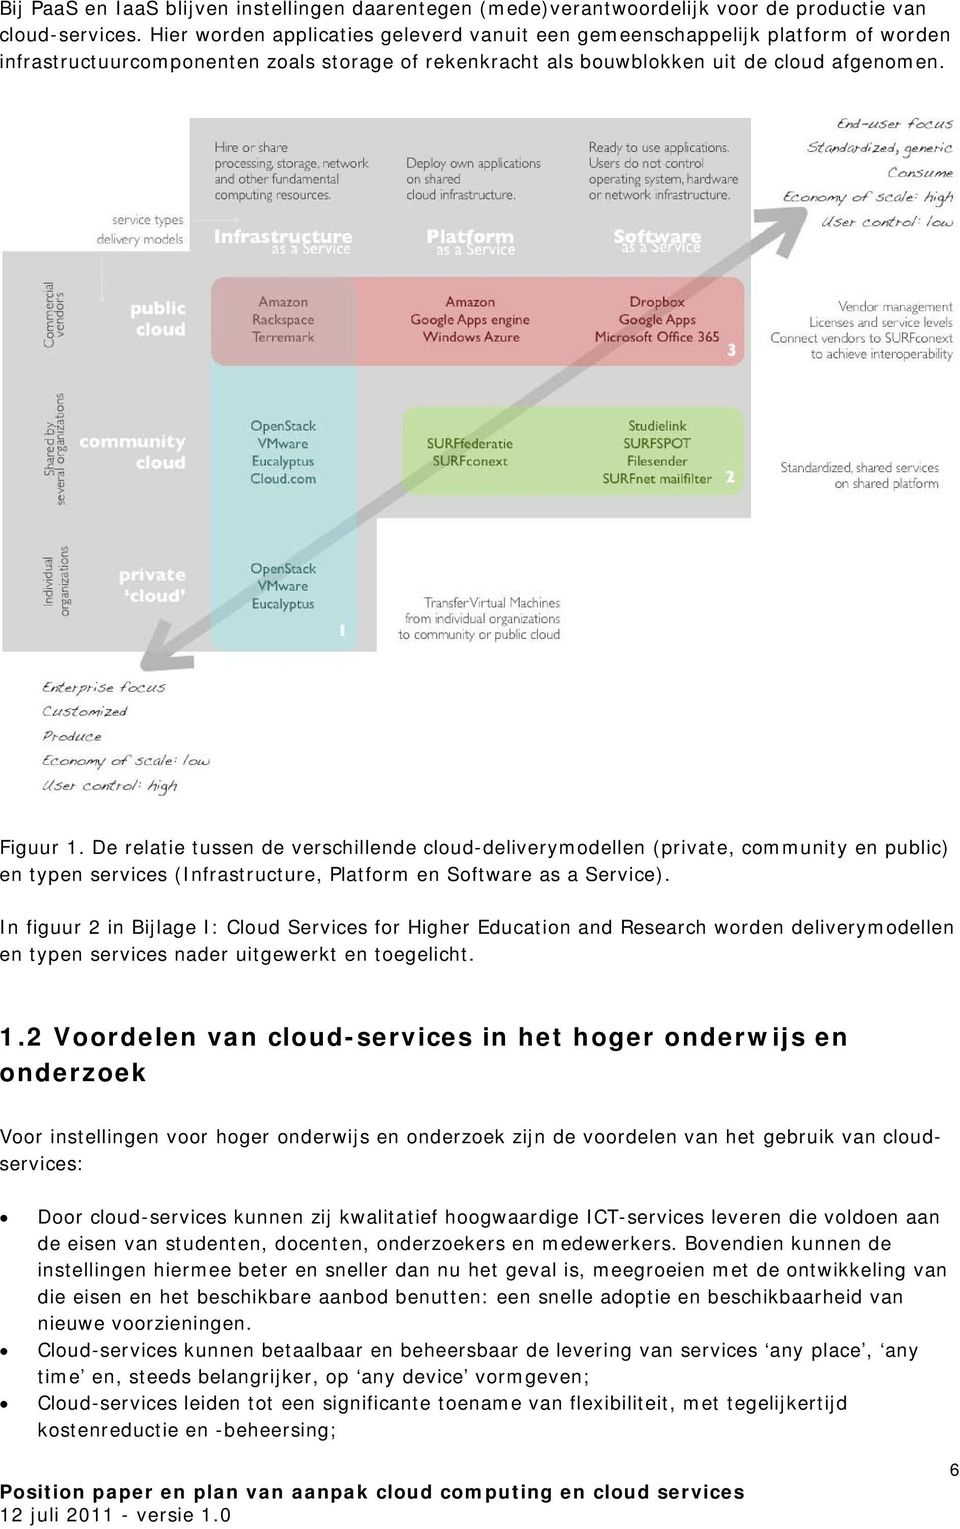 De relatie tussen de verschillende cloud-deliverymodellen (private, community en public) en typen services (Infrastructure, Platform en Software as a Service).